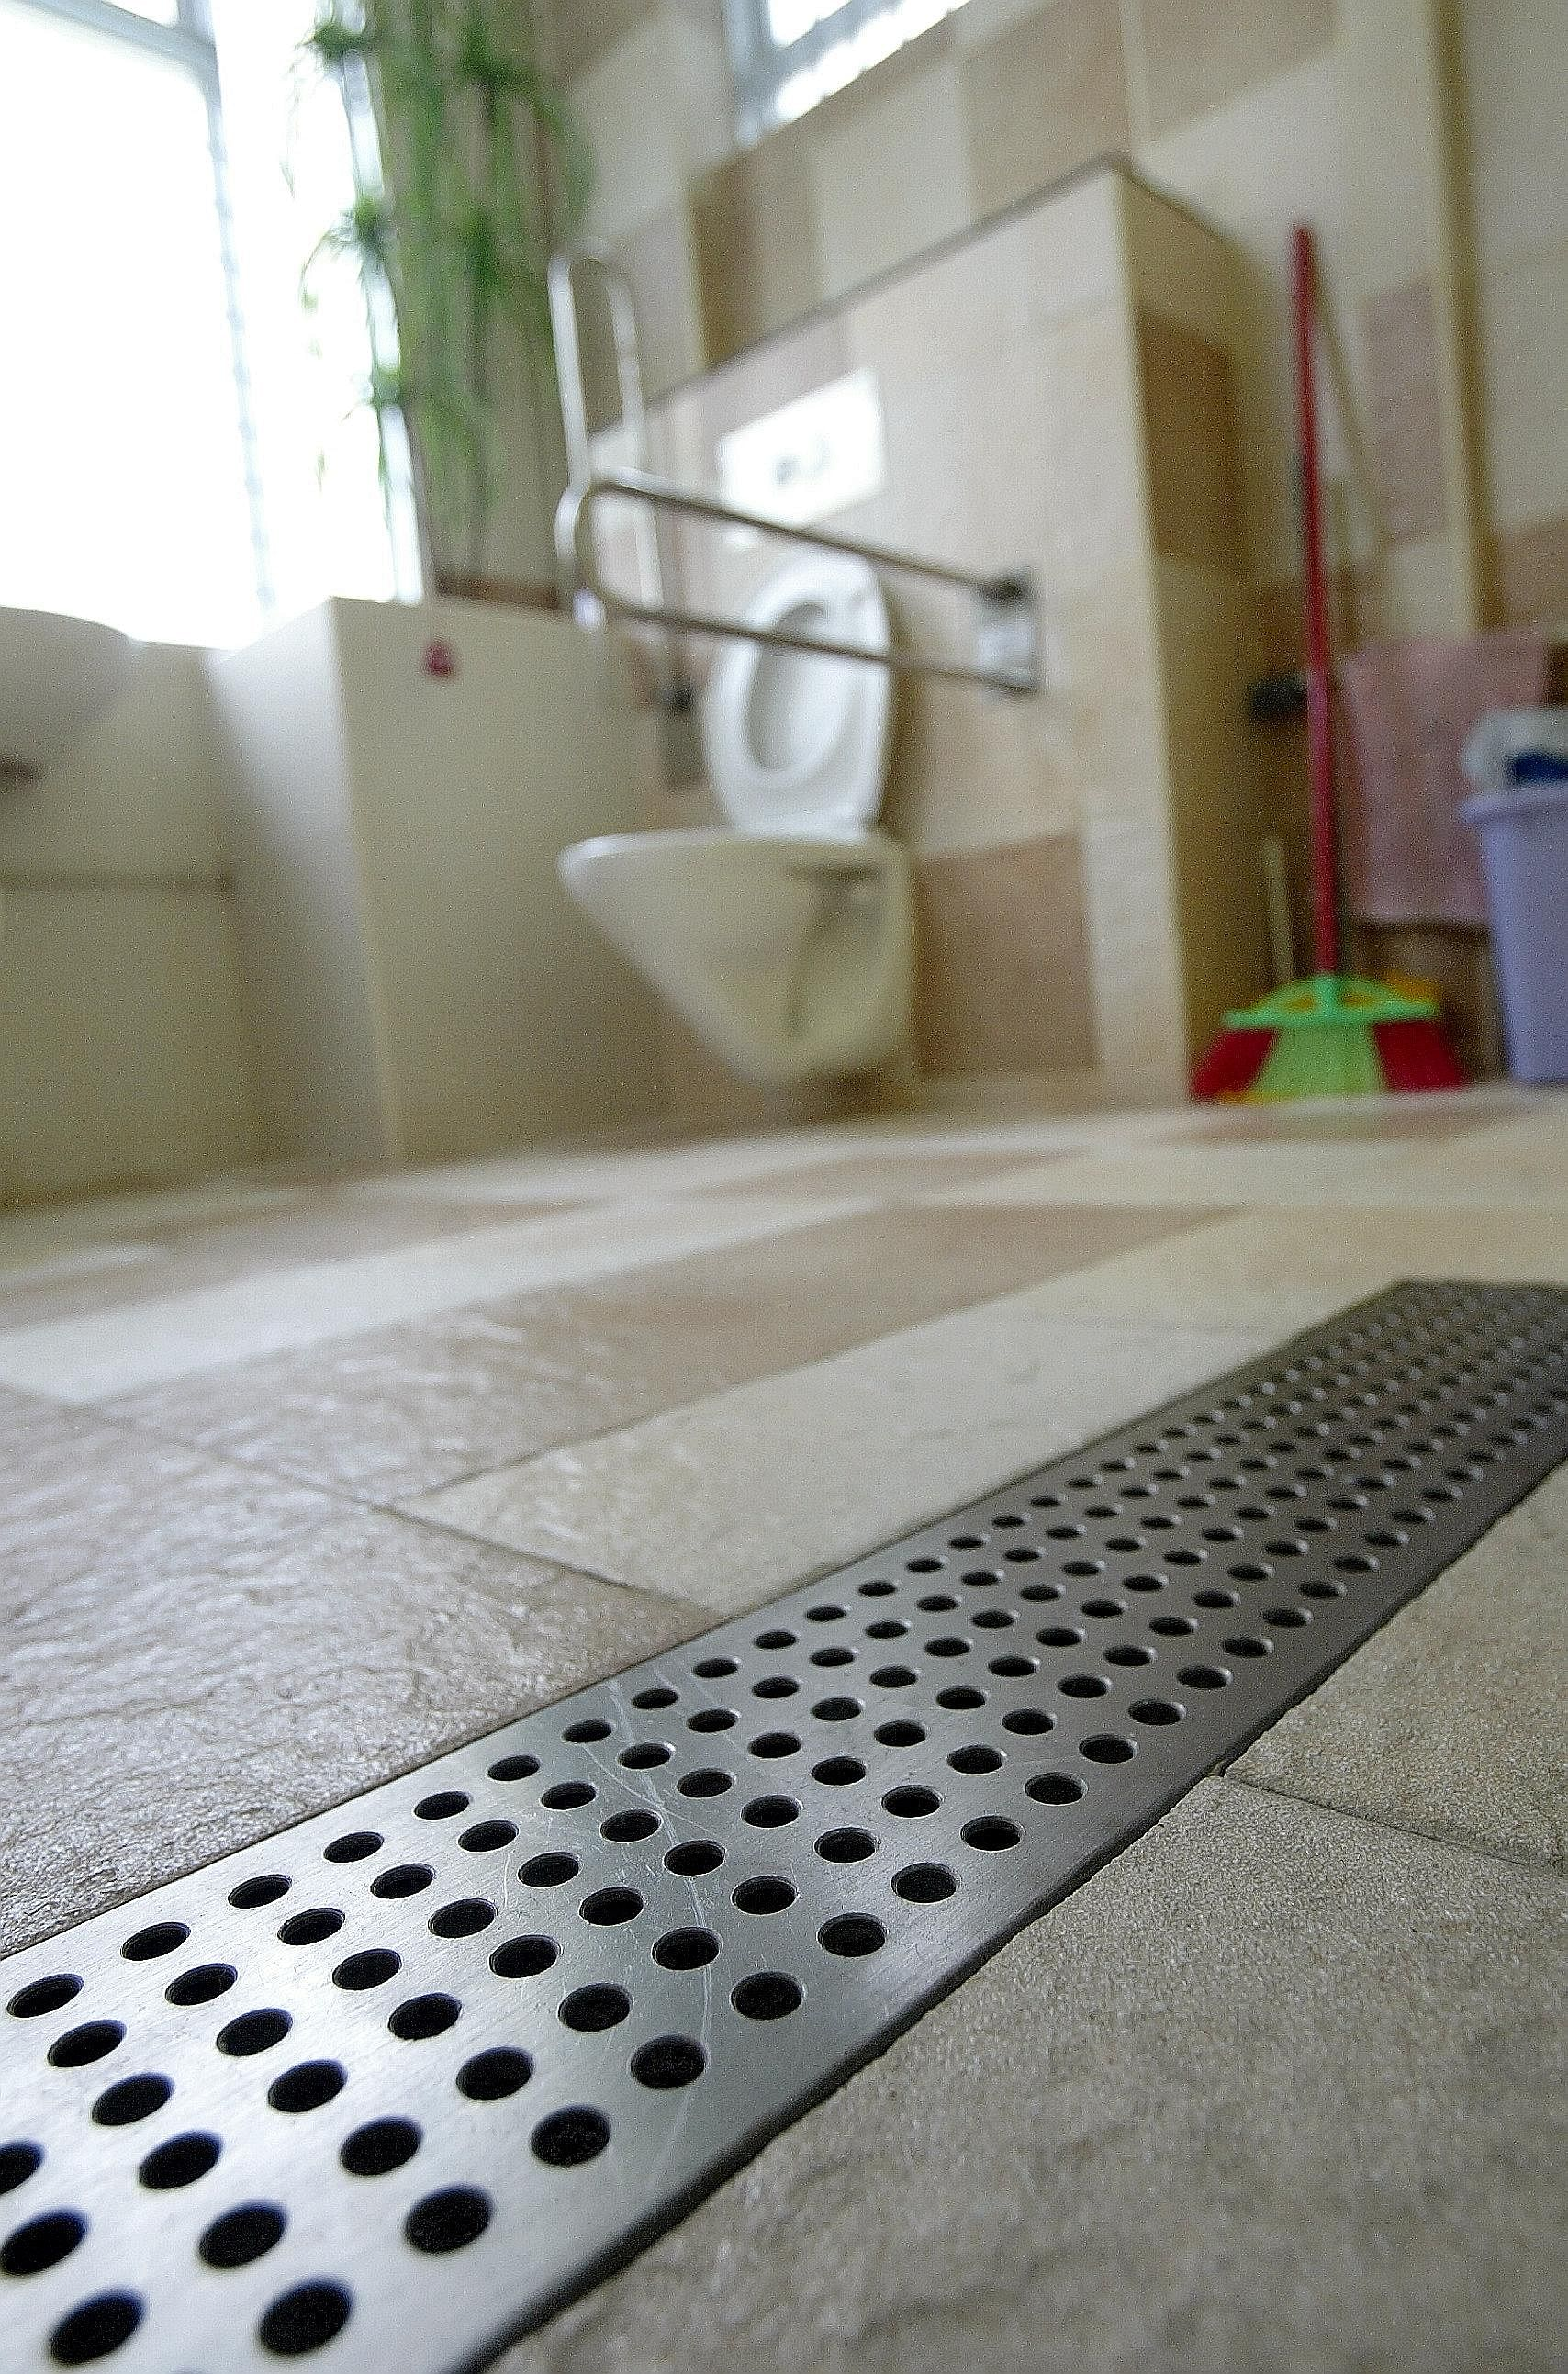 Bathroom Safety For The Elderly Singapore News Top Stories Straits Times